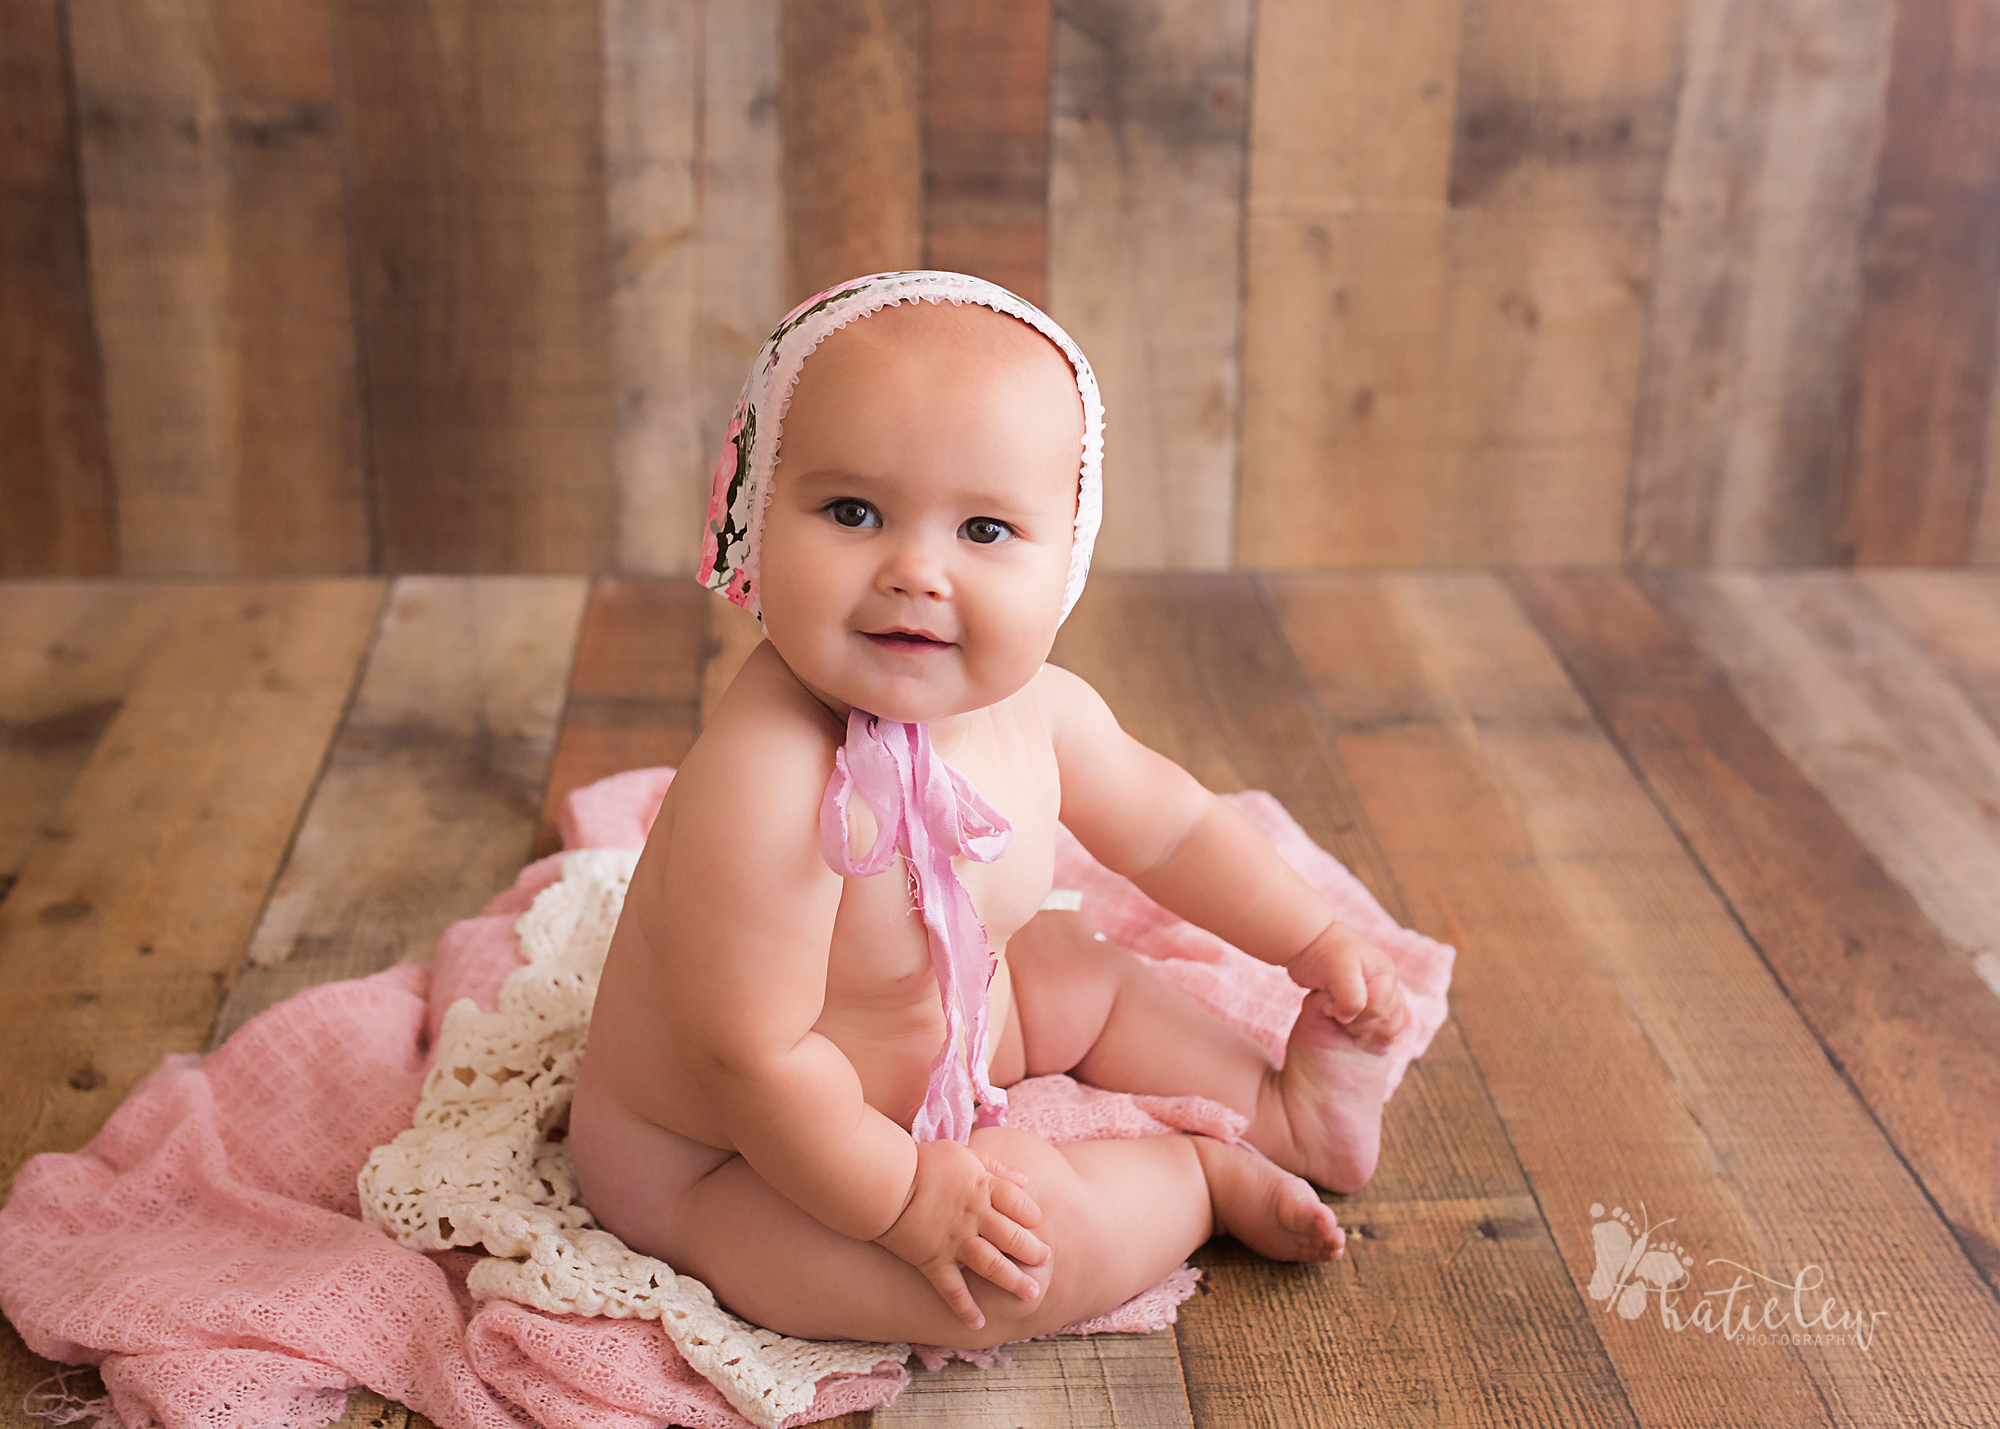 6 month baby naked except for a cute floral bonnet